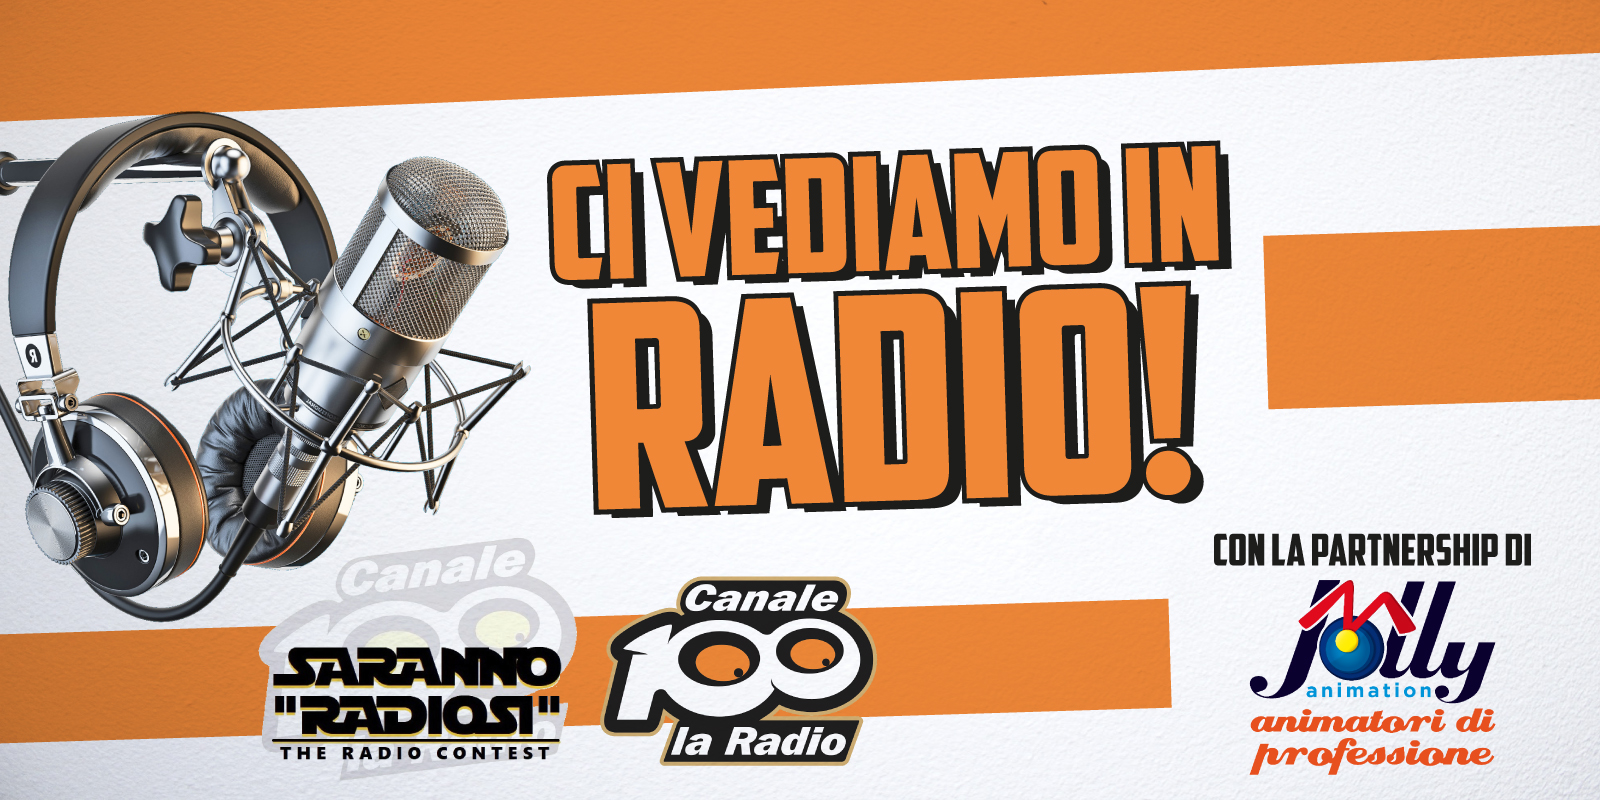 collaborazione jolly animation canale 100 radio